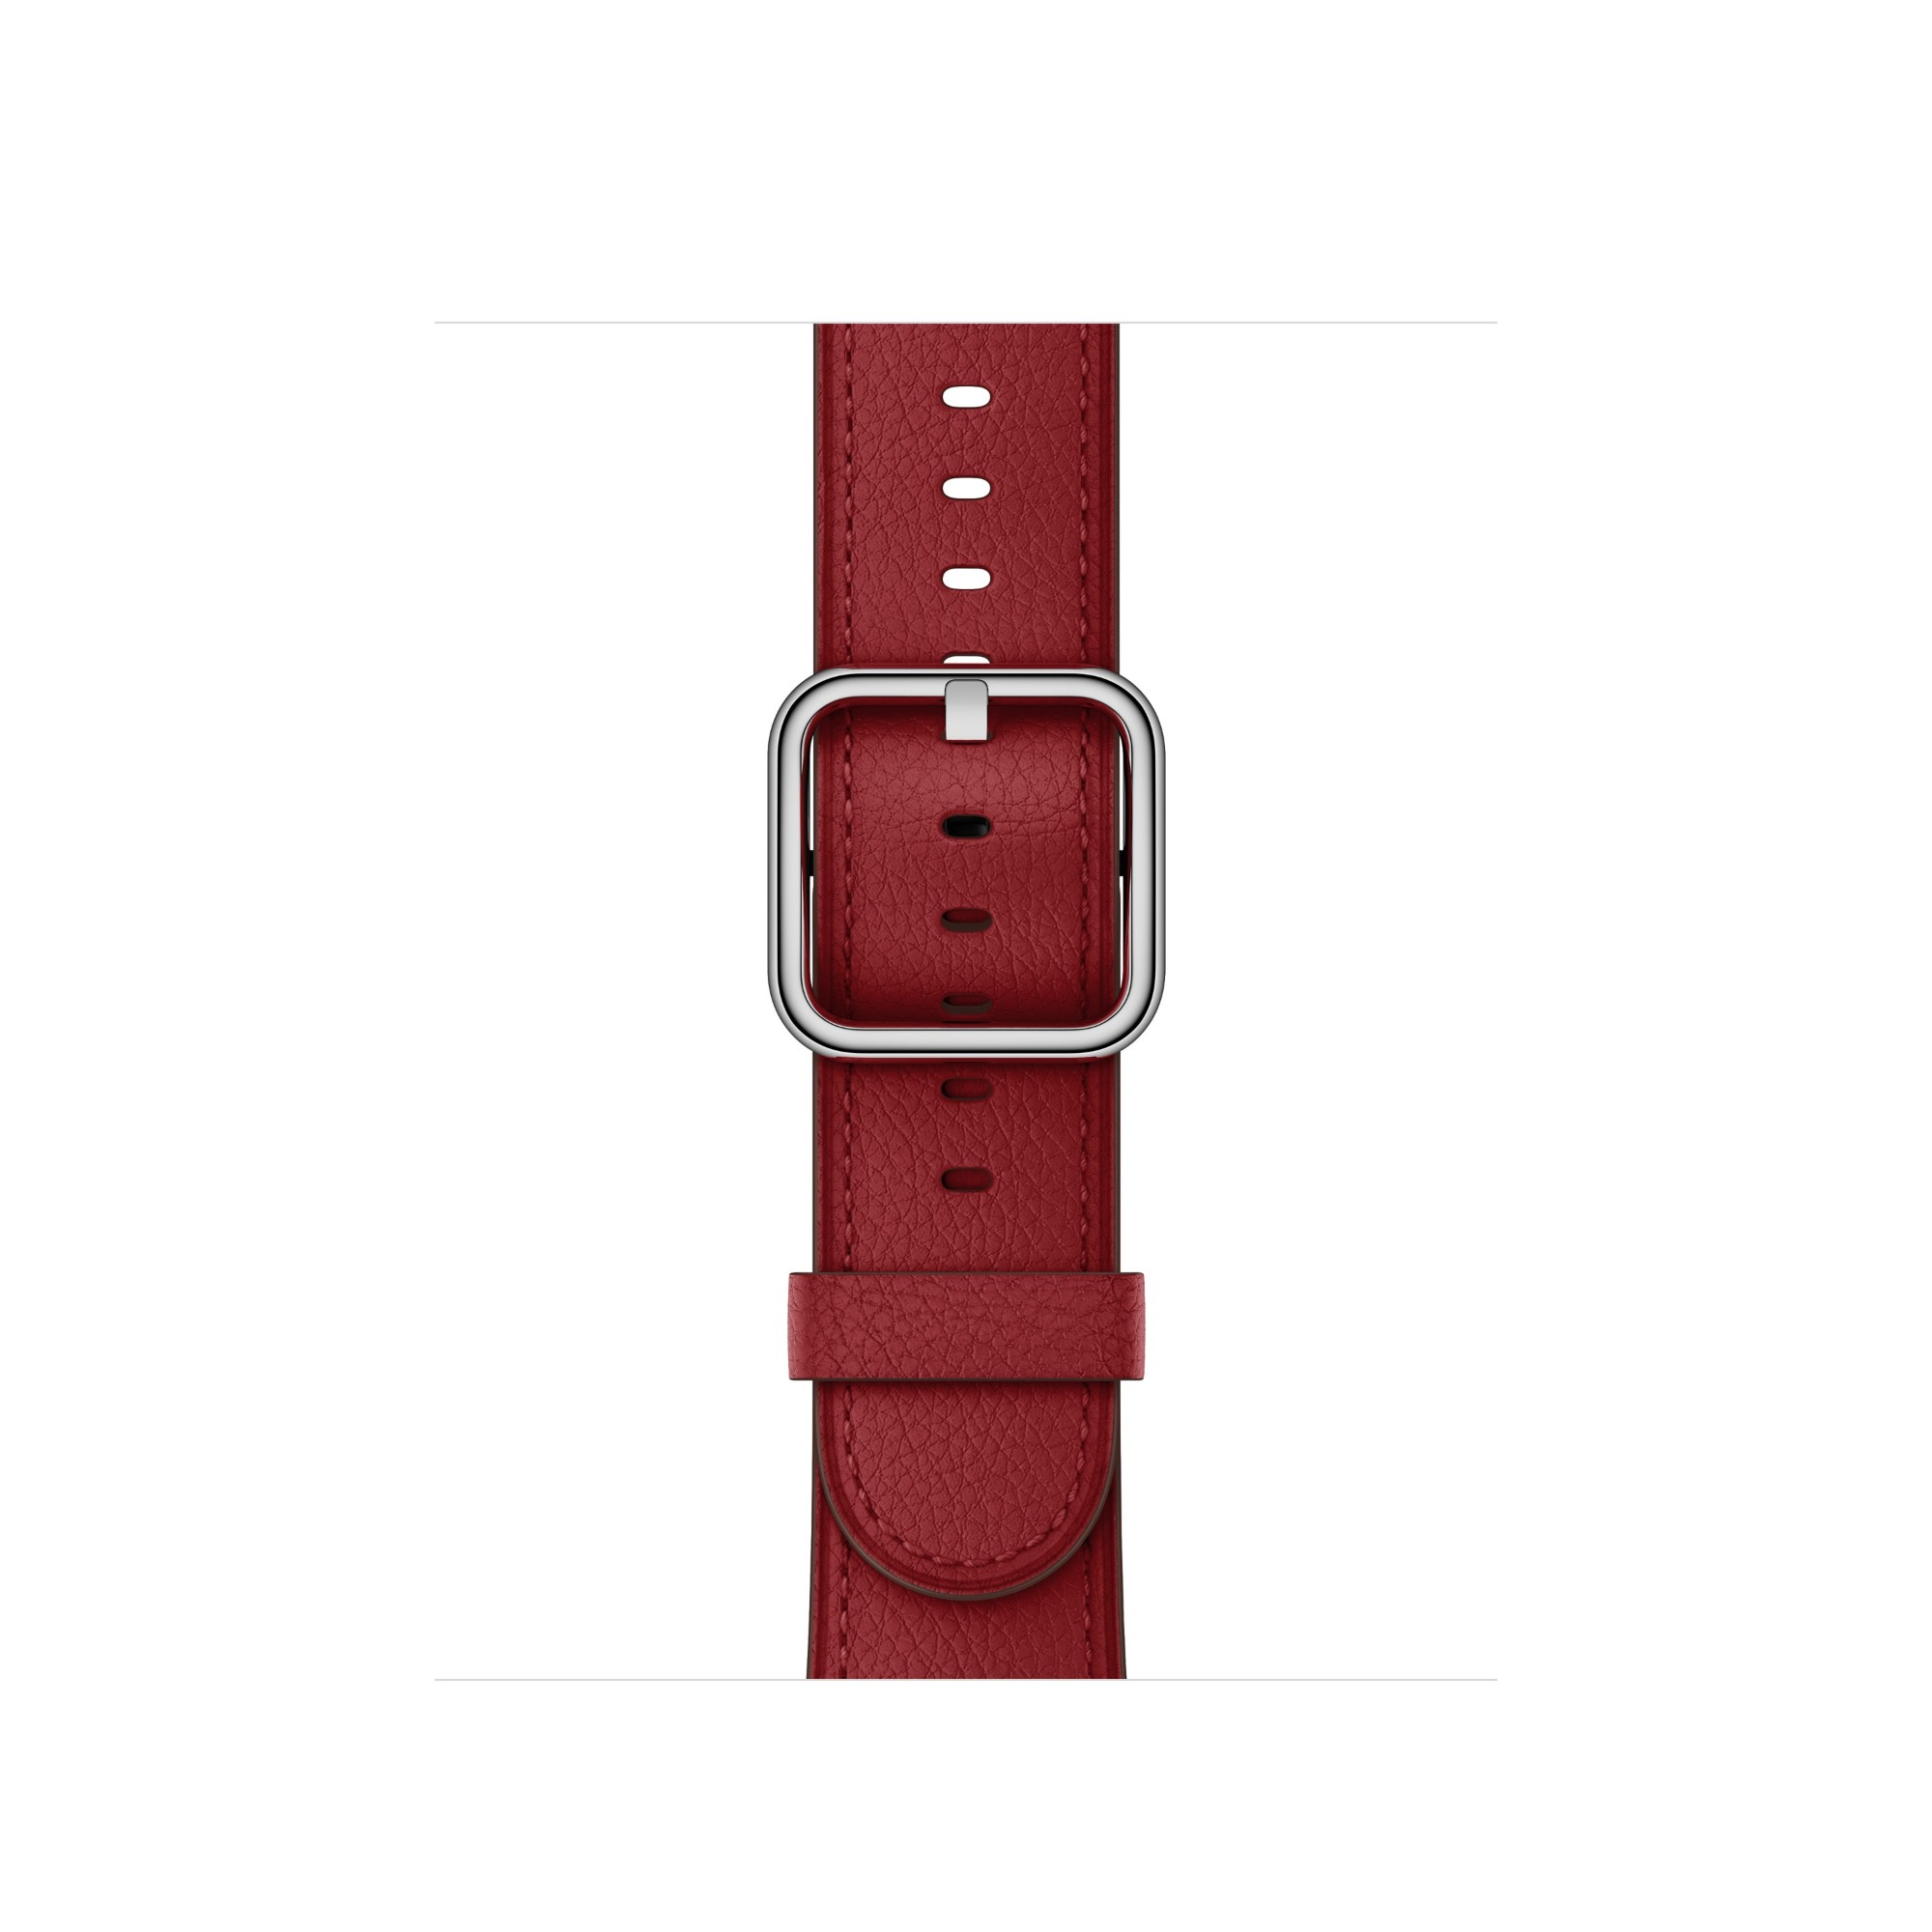 s shipping akribos leather overstock womens on xxiv product diamond free jewelry cherry quartz over orders watches red strap women watch